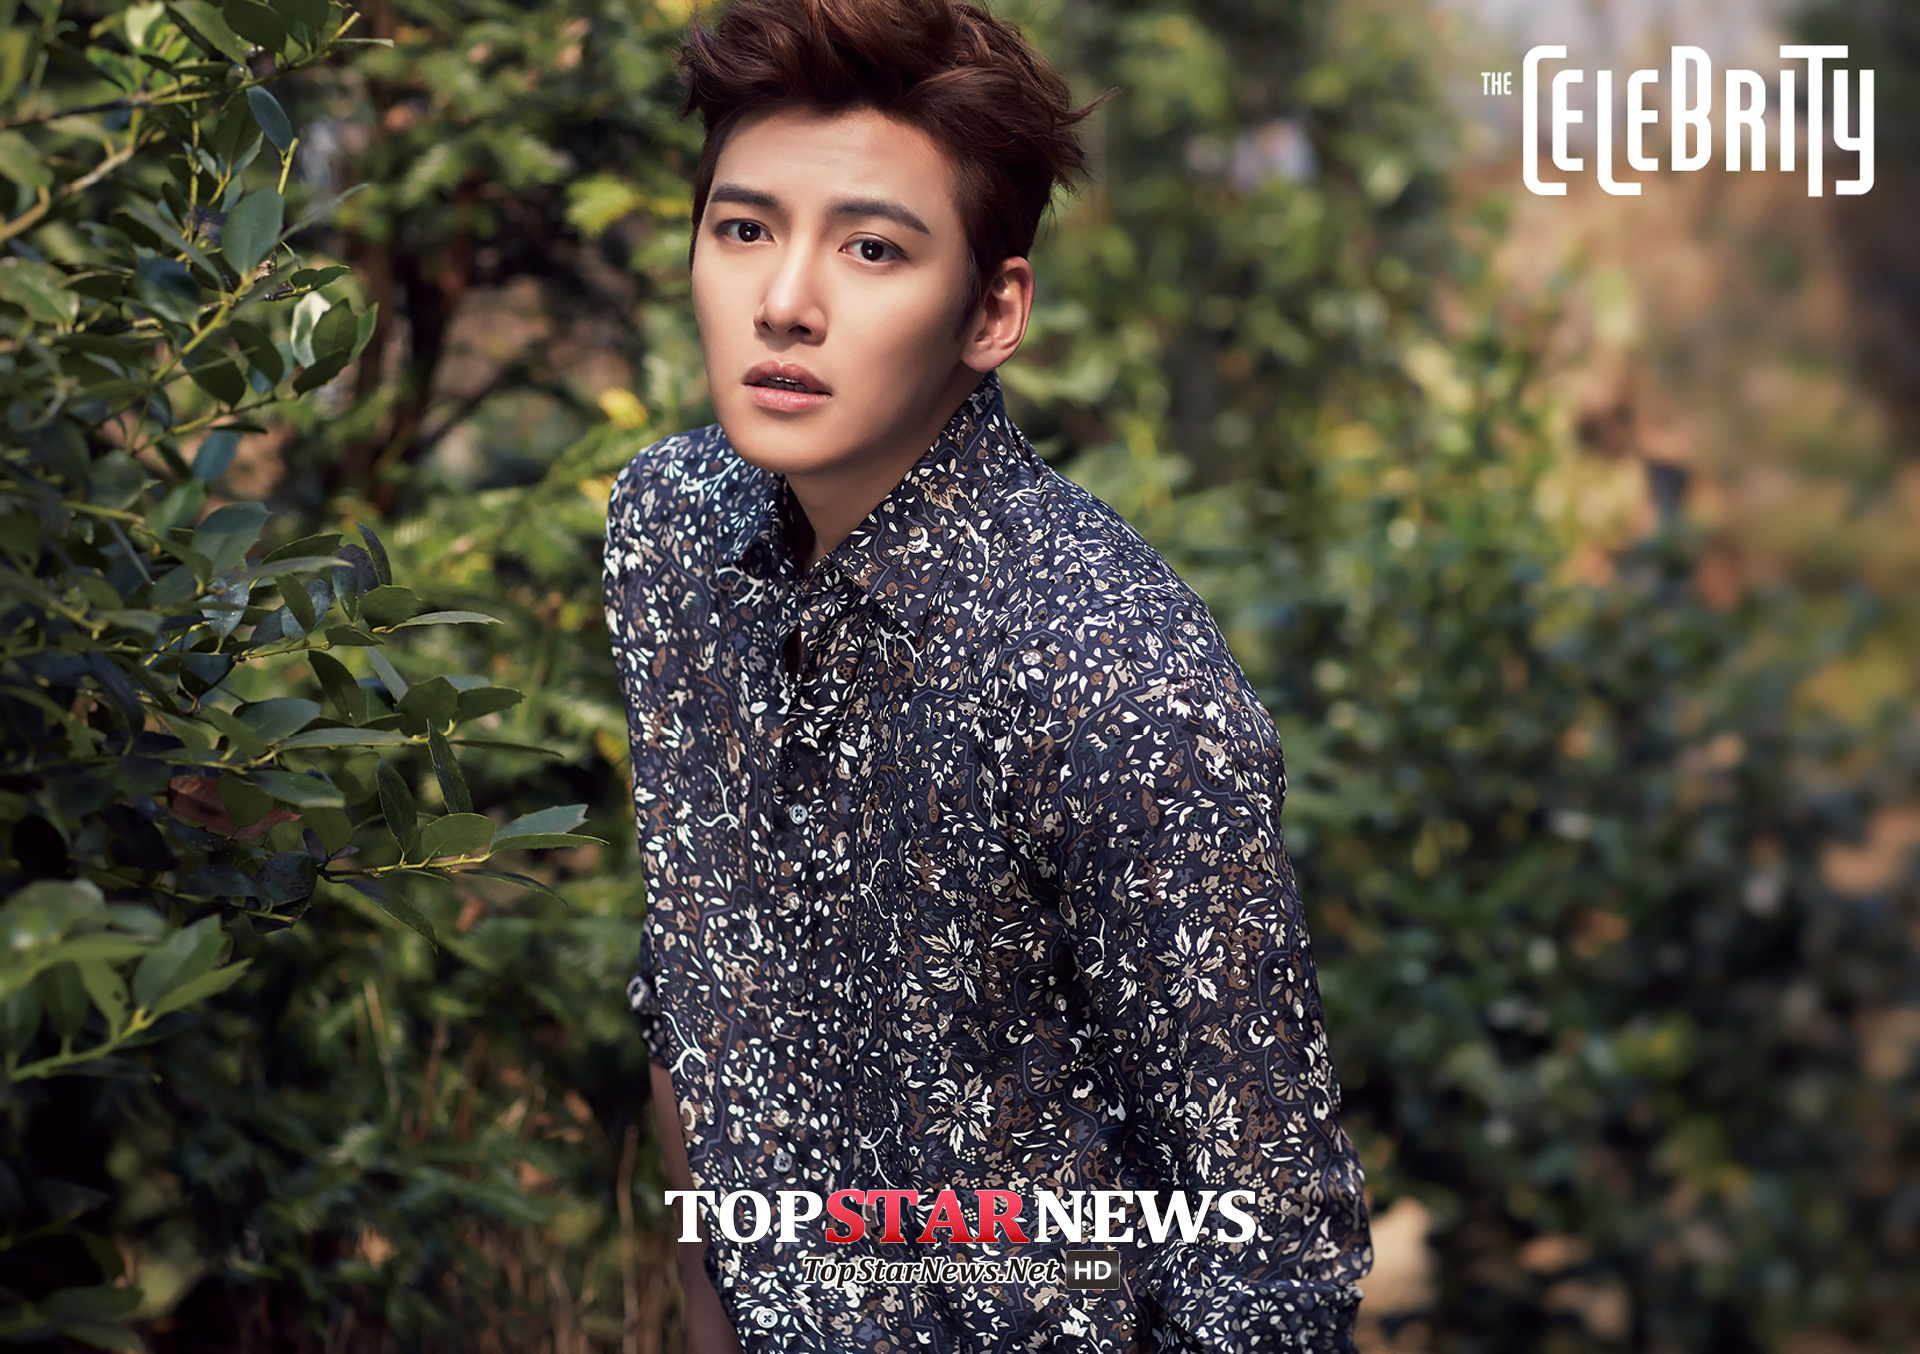 Magazine Ji Chang Wook Fronts The Cover Of The Celebrity